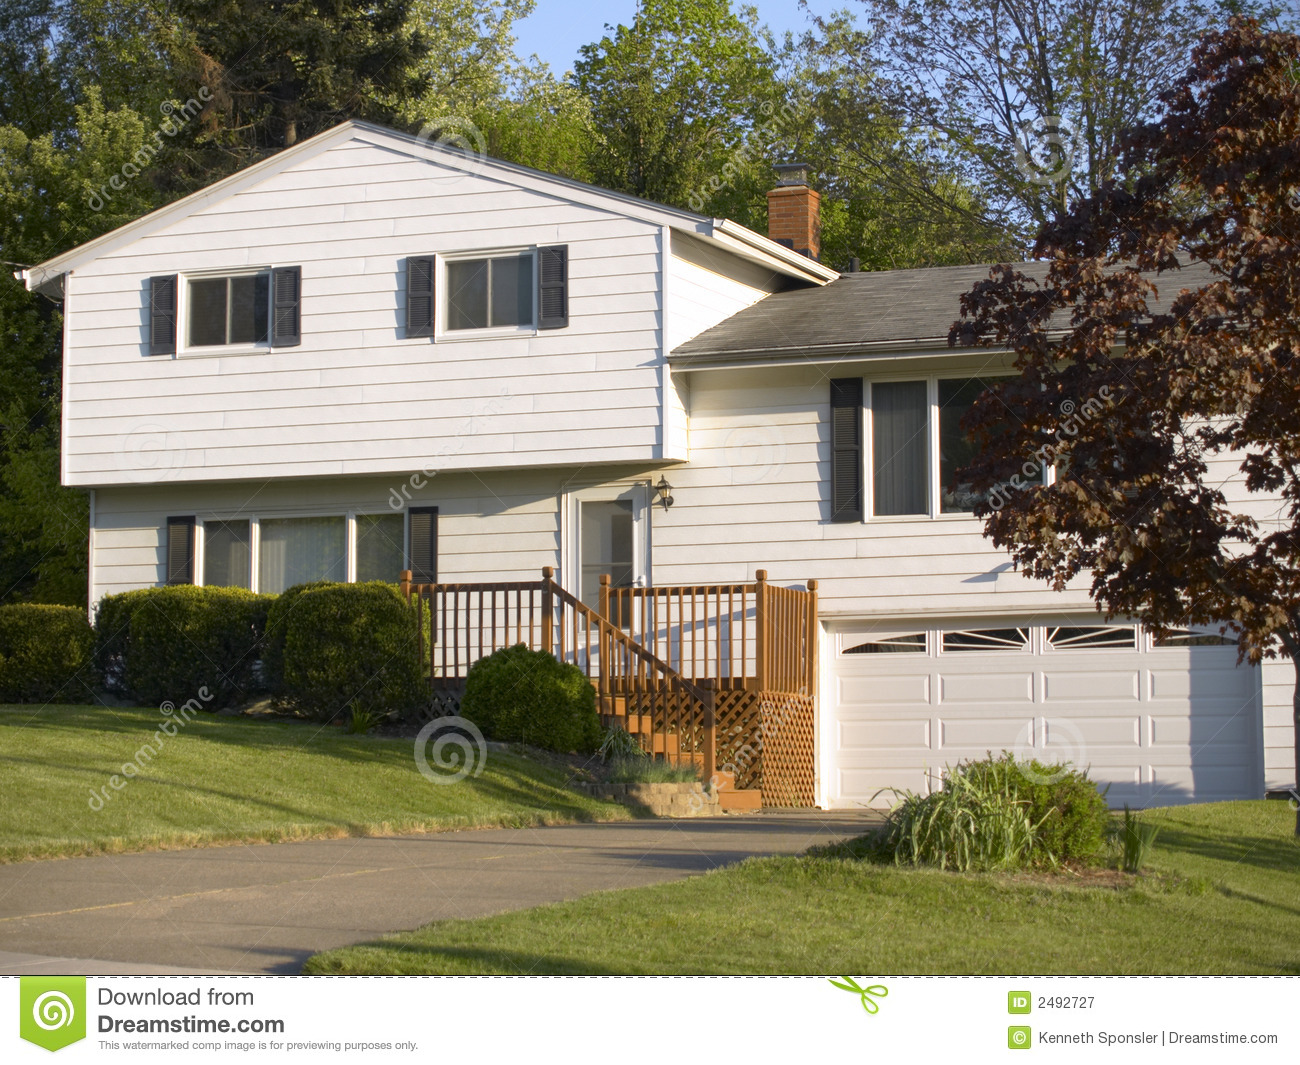 split level house stock image image of garage step